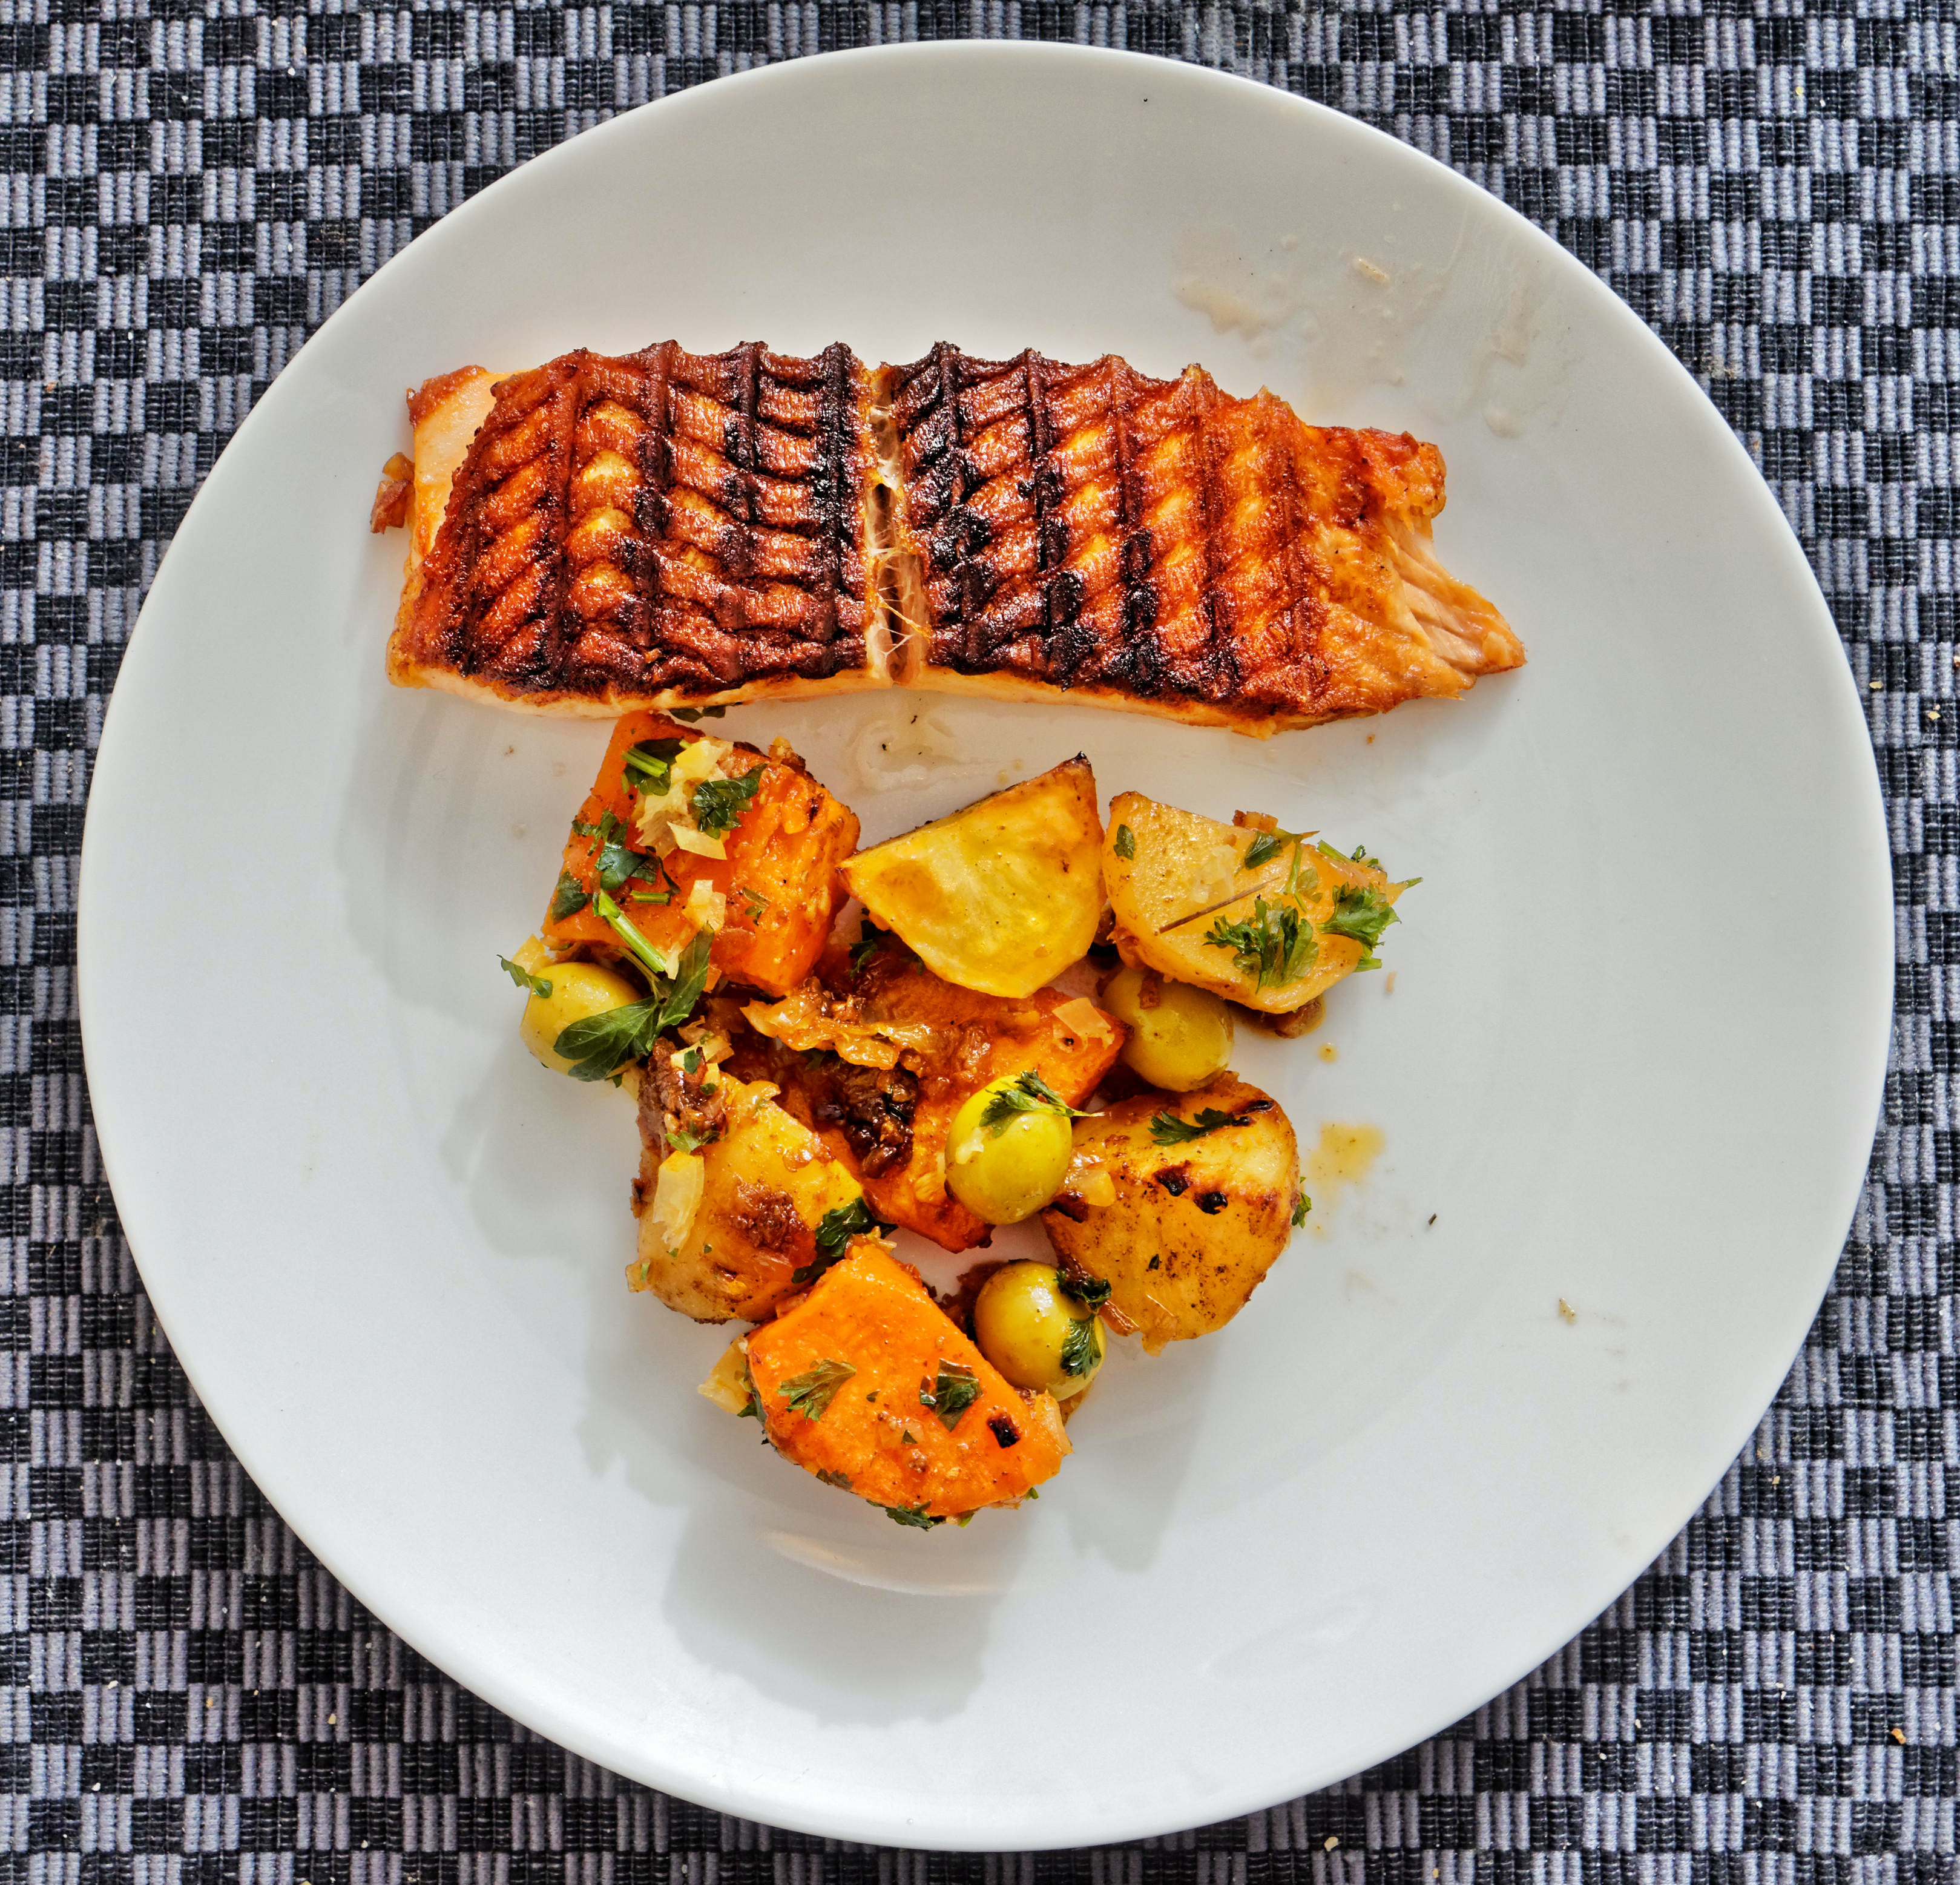 This should be Salmon-with-sweet-potato-and-olives.jpeg.  Is it missing?